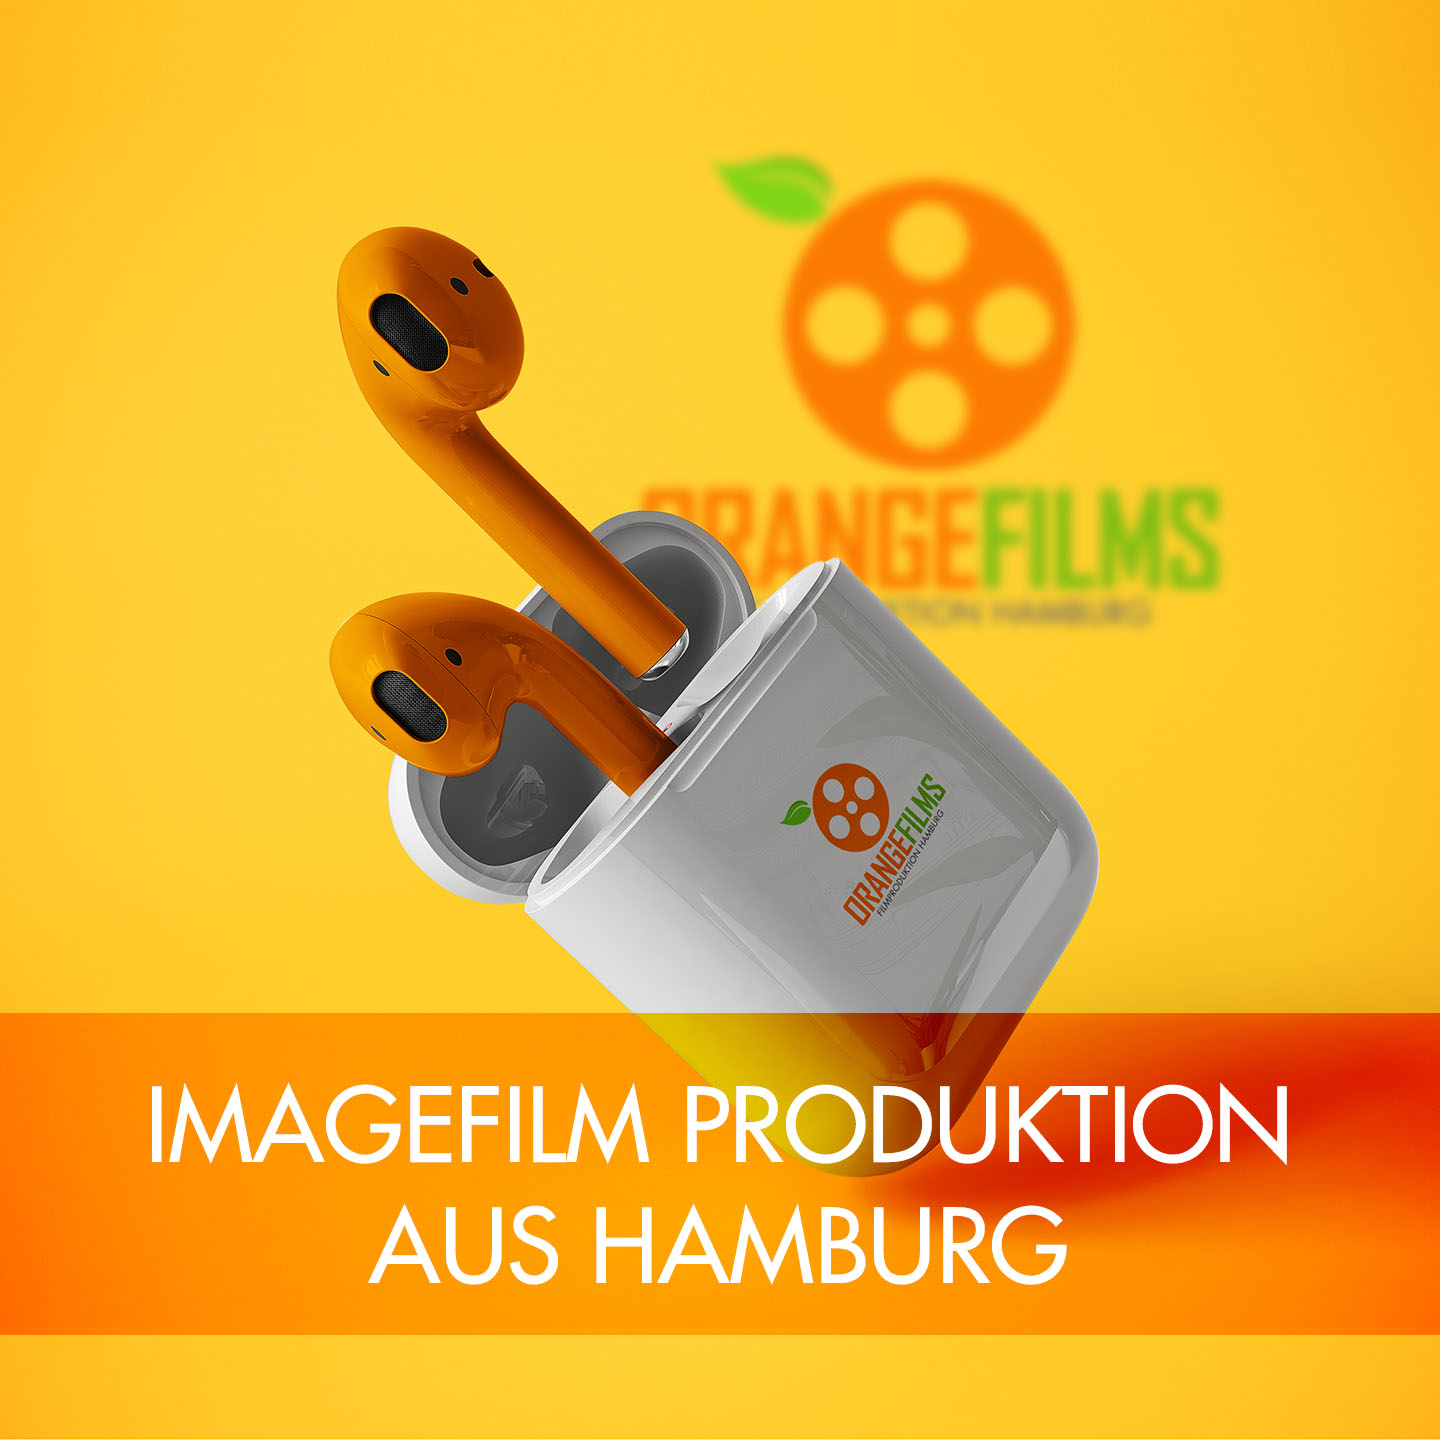 Imagefilm Produktion Hamburg - Team Ximpix